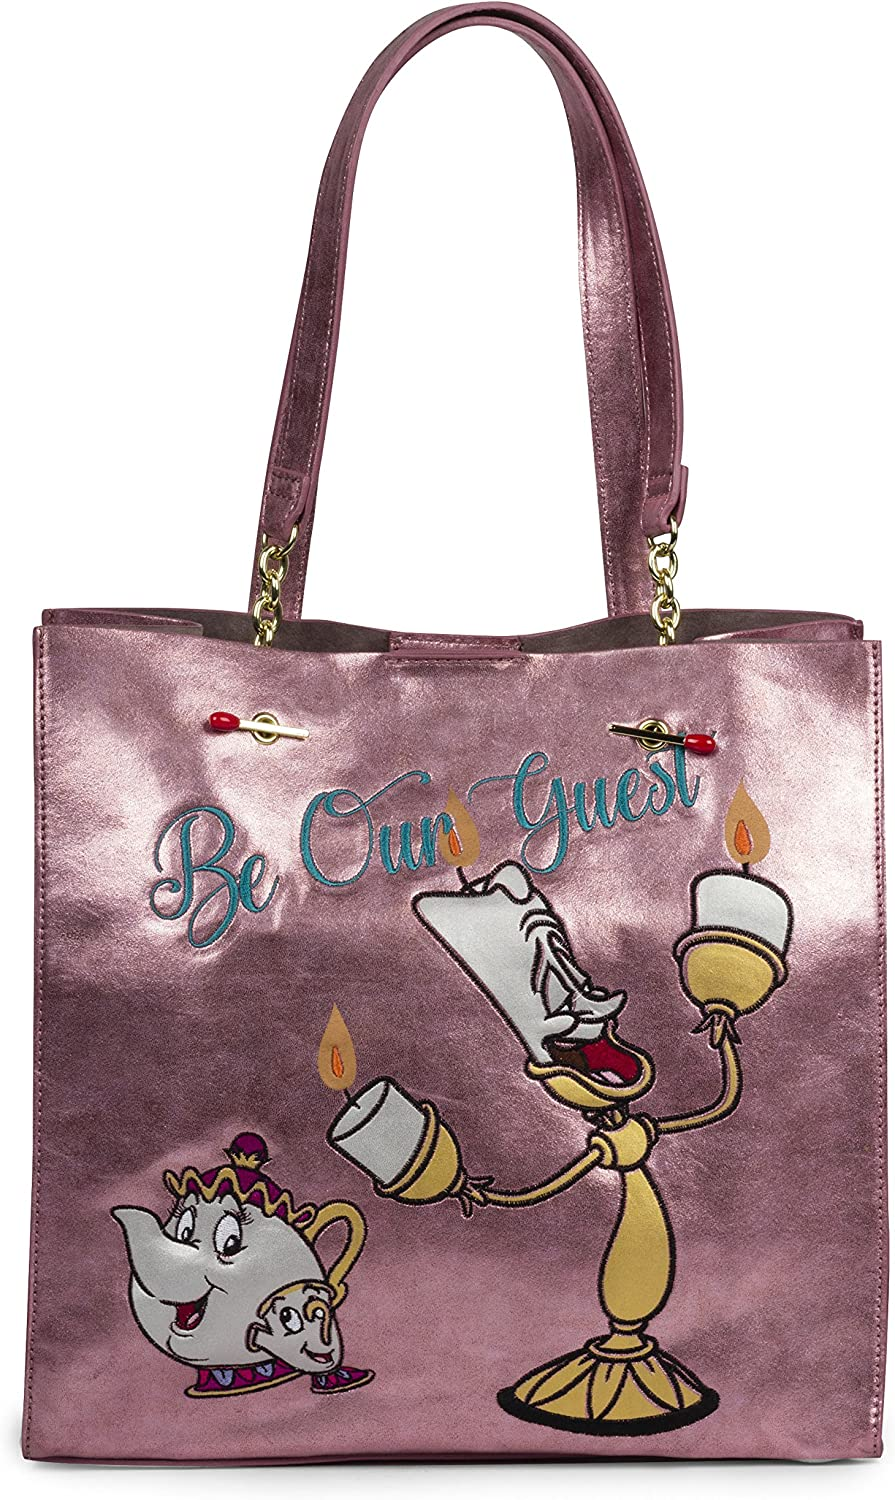 Danielle Nicole Disney Purple Be Our Guest Beauty and Beast Tote for Women